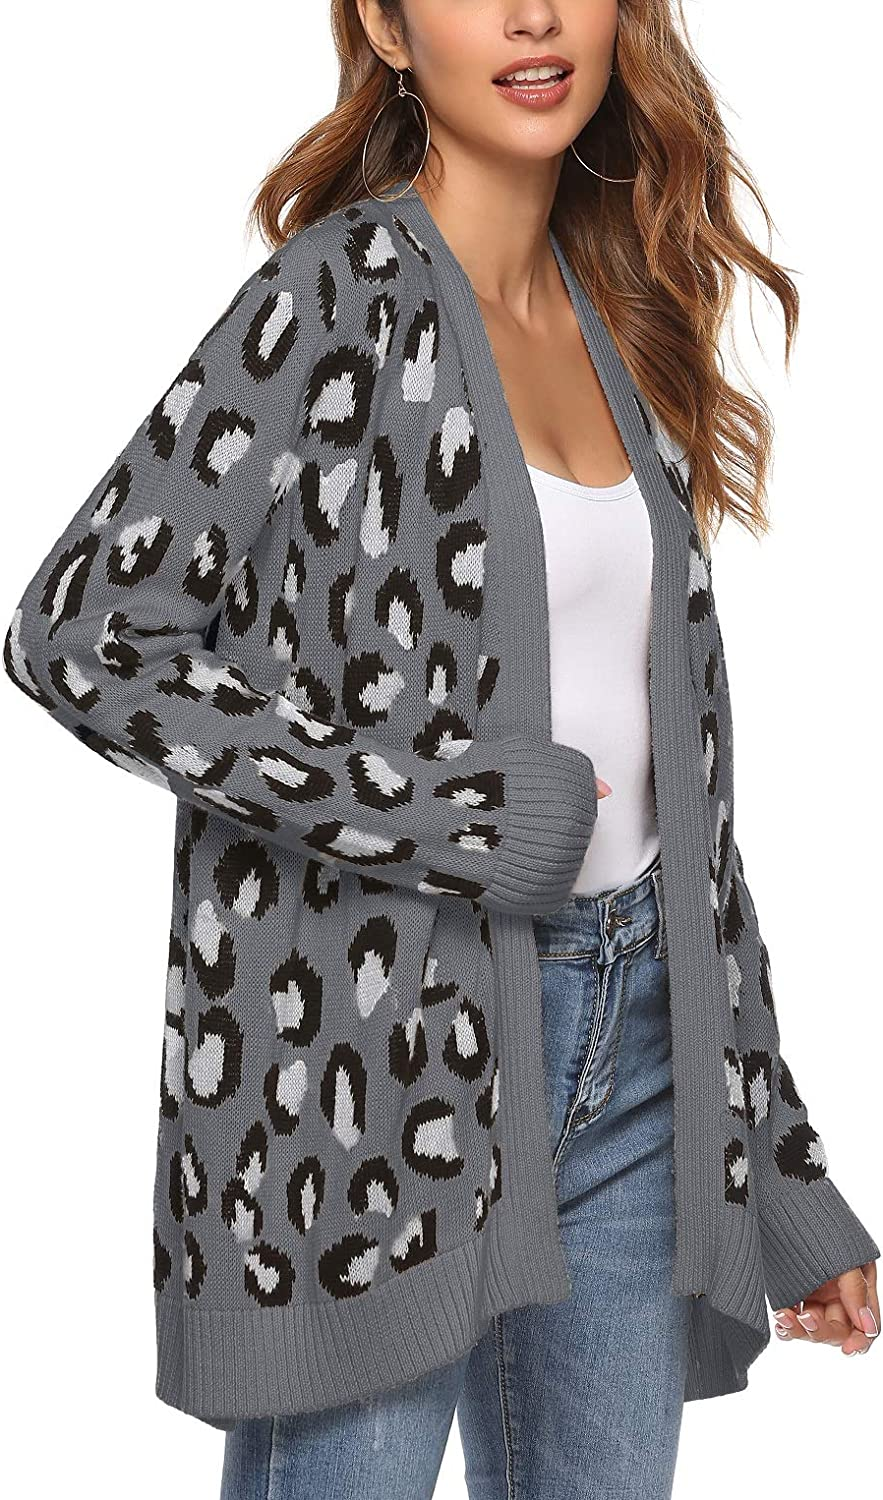 Women's Leopard Cardigan Sweater Open Front Knit Kimono Duster Cheetah Long Sleeves Chic Coat